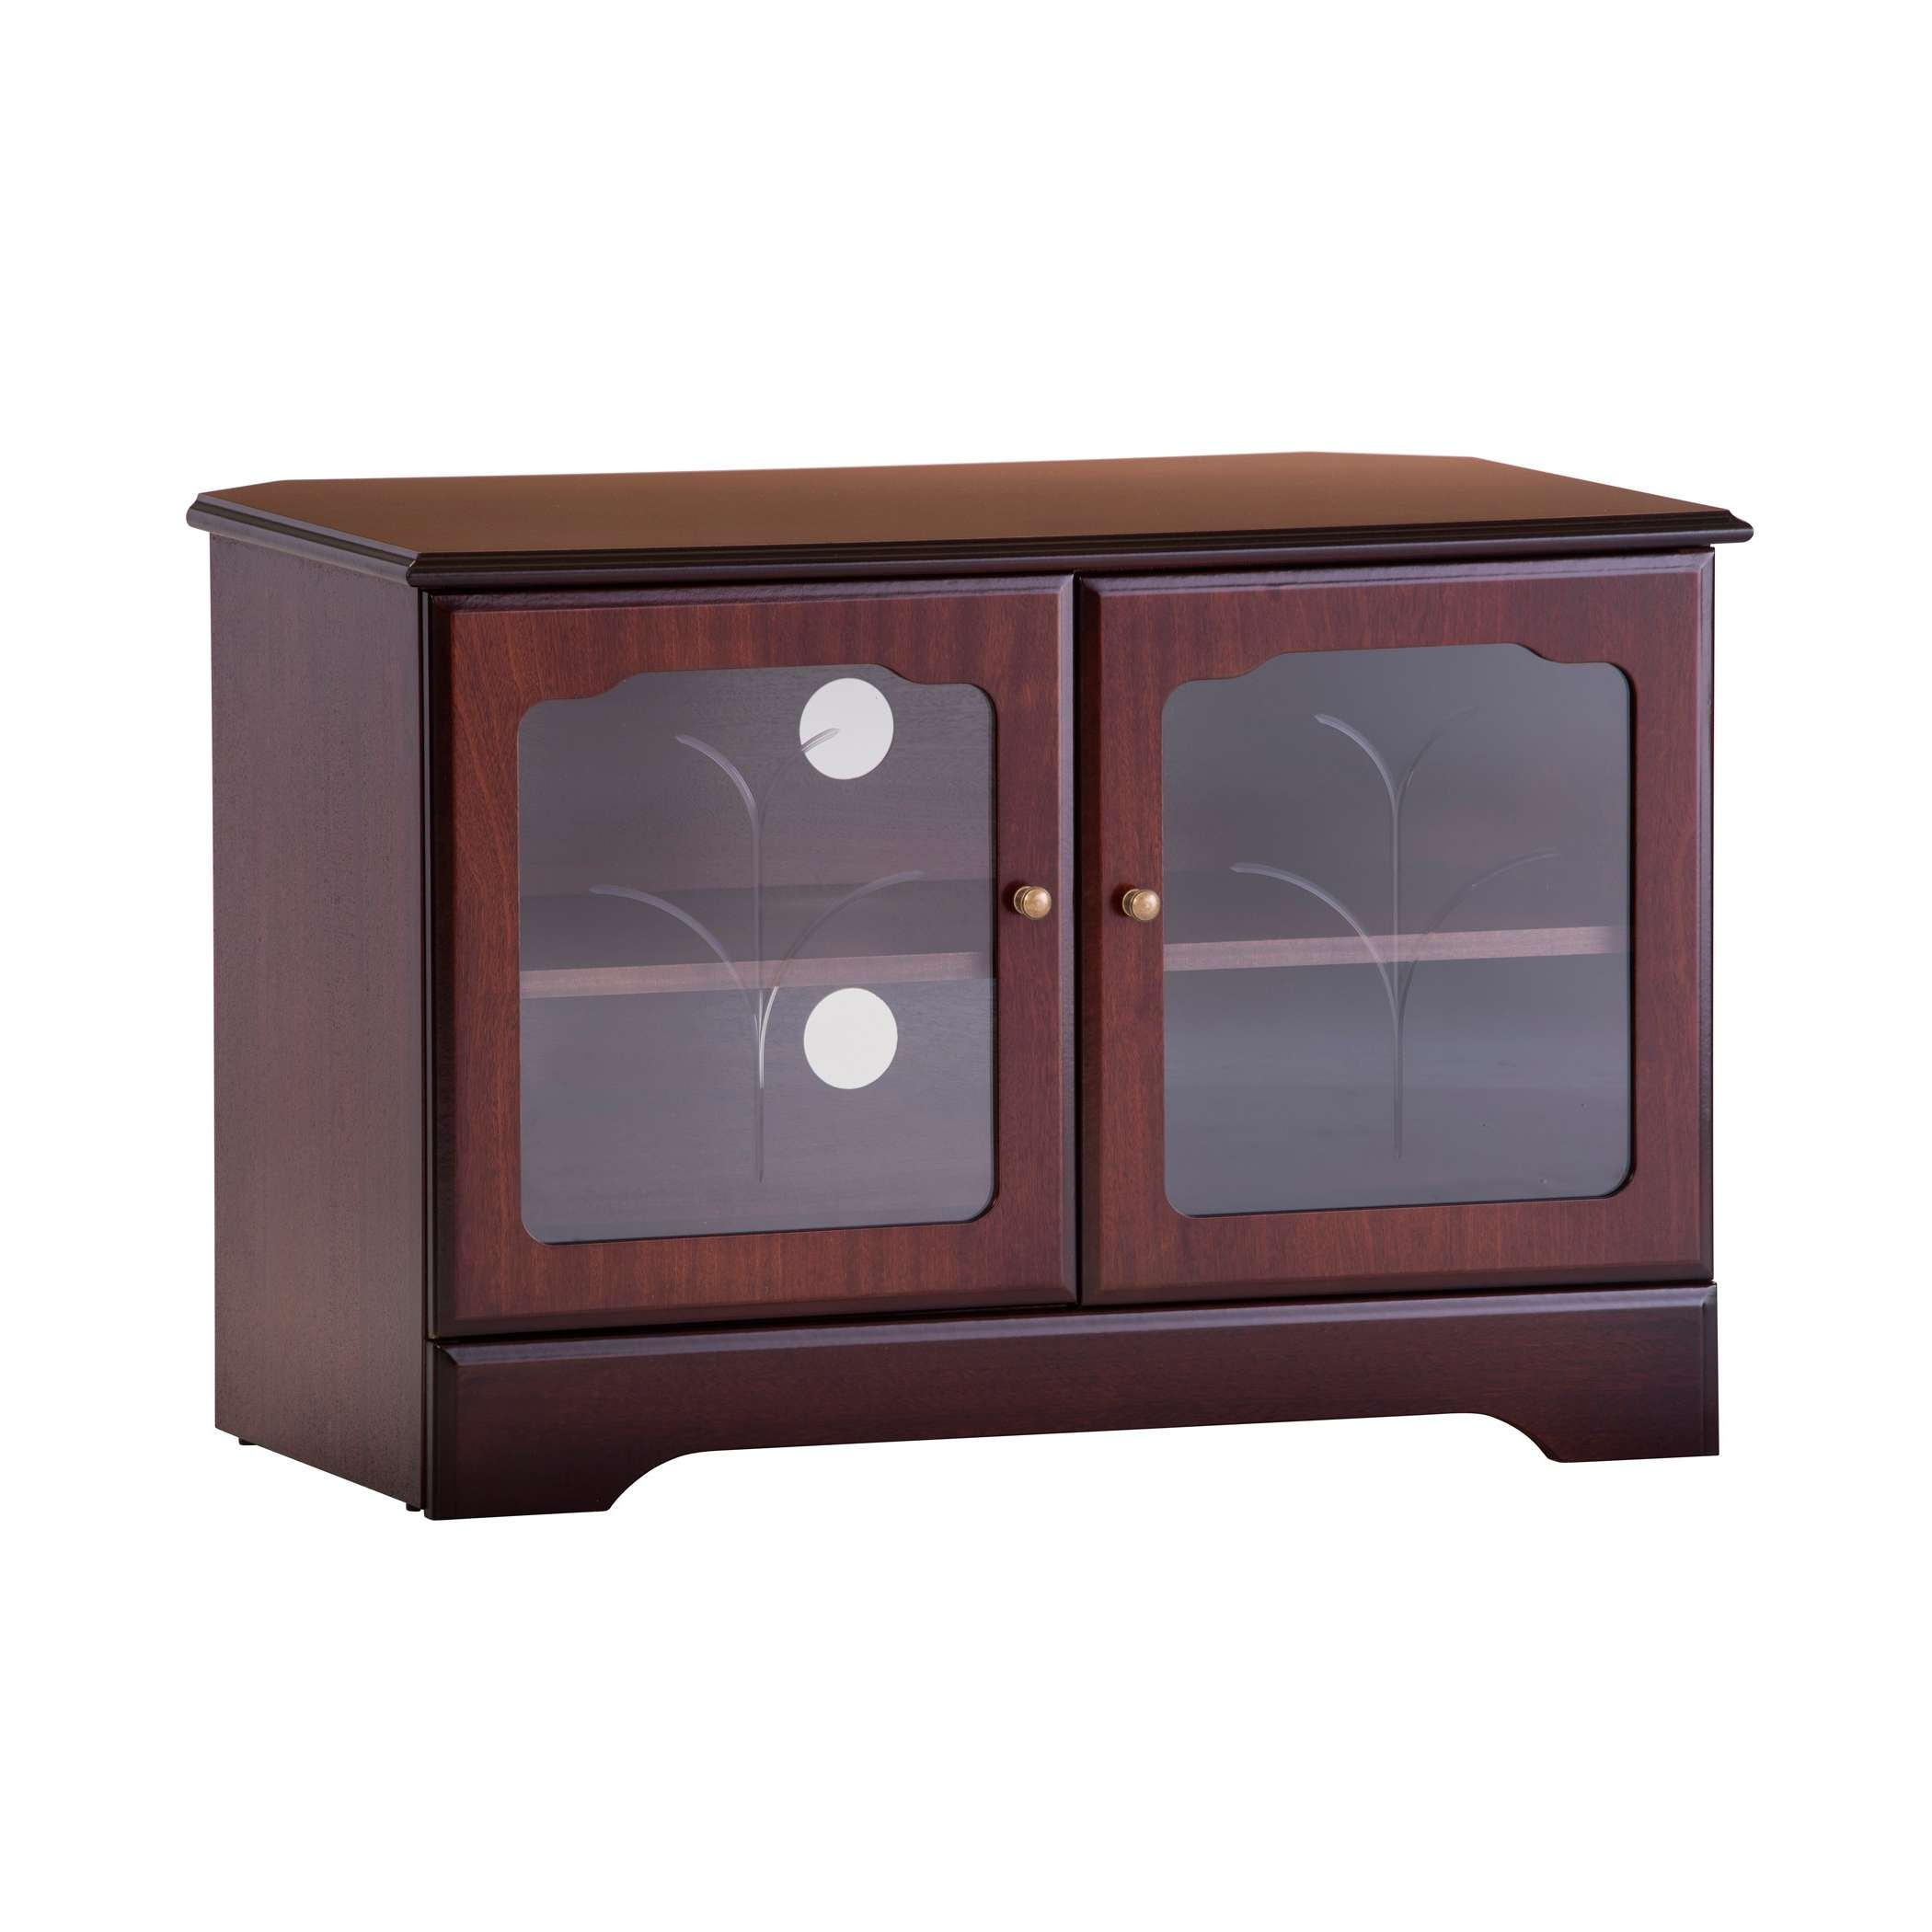 Corner Tv Stand In Mahogany Or Teak | Gola Furniture Uk Intended For Mahogany Corner Tv Cabinets (View 4 of 20)